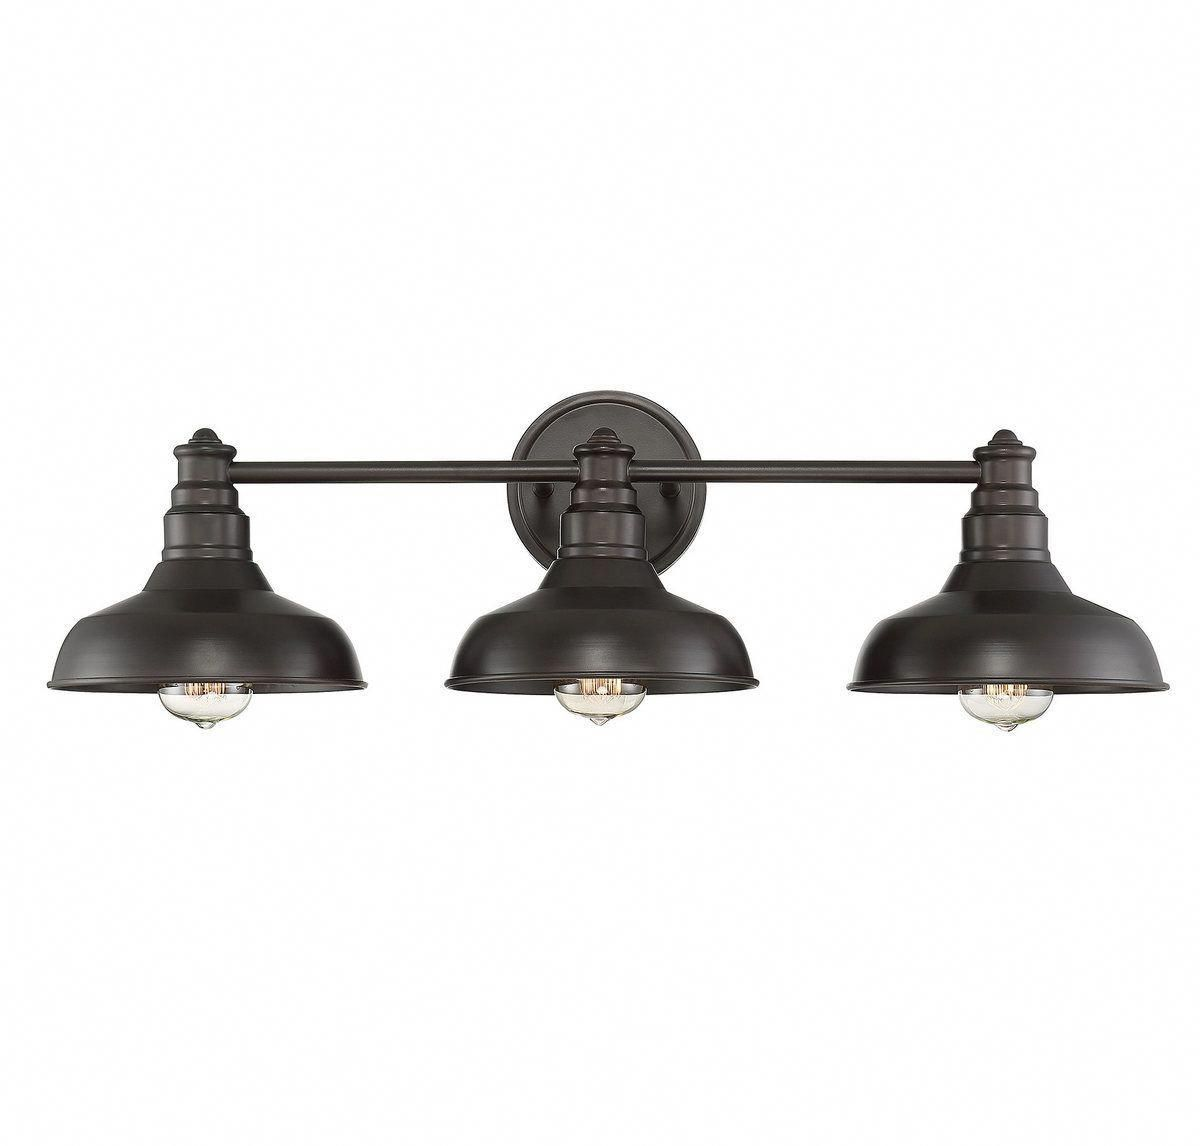 Trade Winds Lighting Vintage 3 Light 30 Bath Bar In Oil Rubbed Bronze Bathroom Vanity Lighting Ind Bathroom Vanity Lighting Bronze Bathroom Vanity Lighting